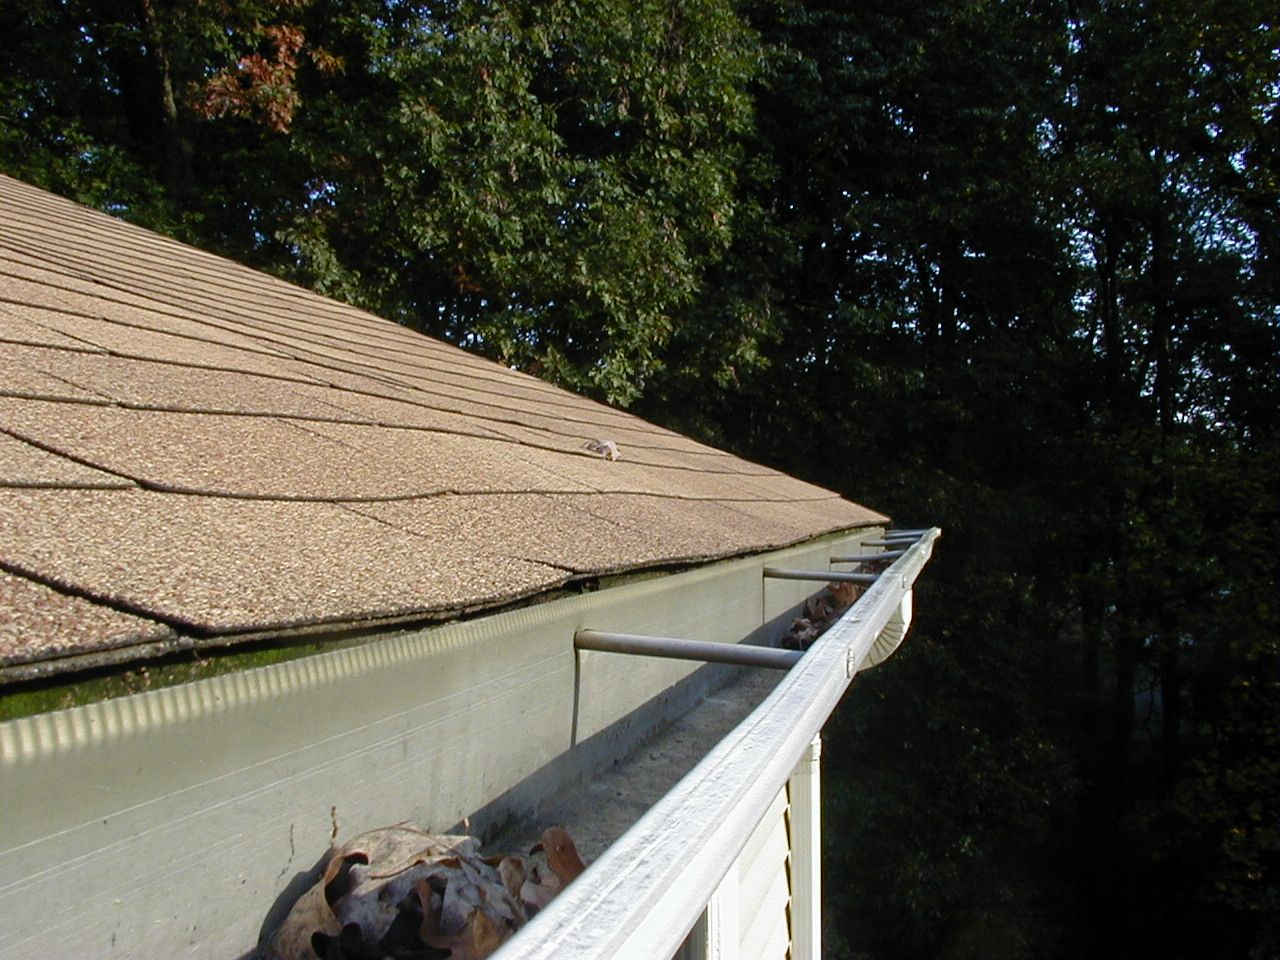 Nice Gutter Repair Job By Our Friends In Montgomery County Maryland Henry S Housework Gutter Repair Gutters Gutter